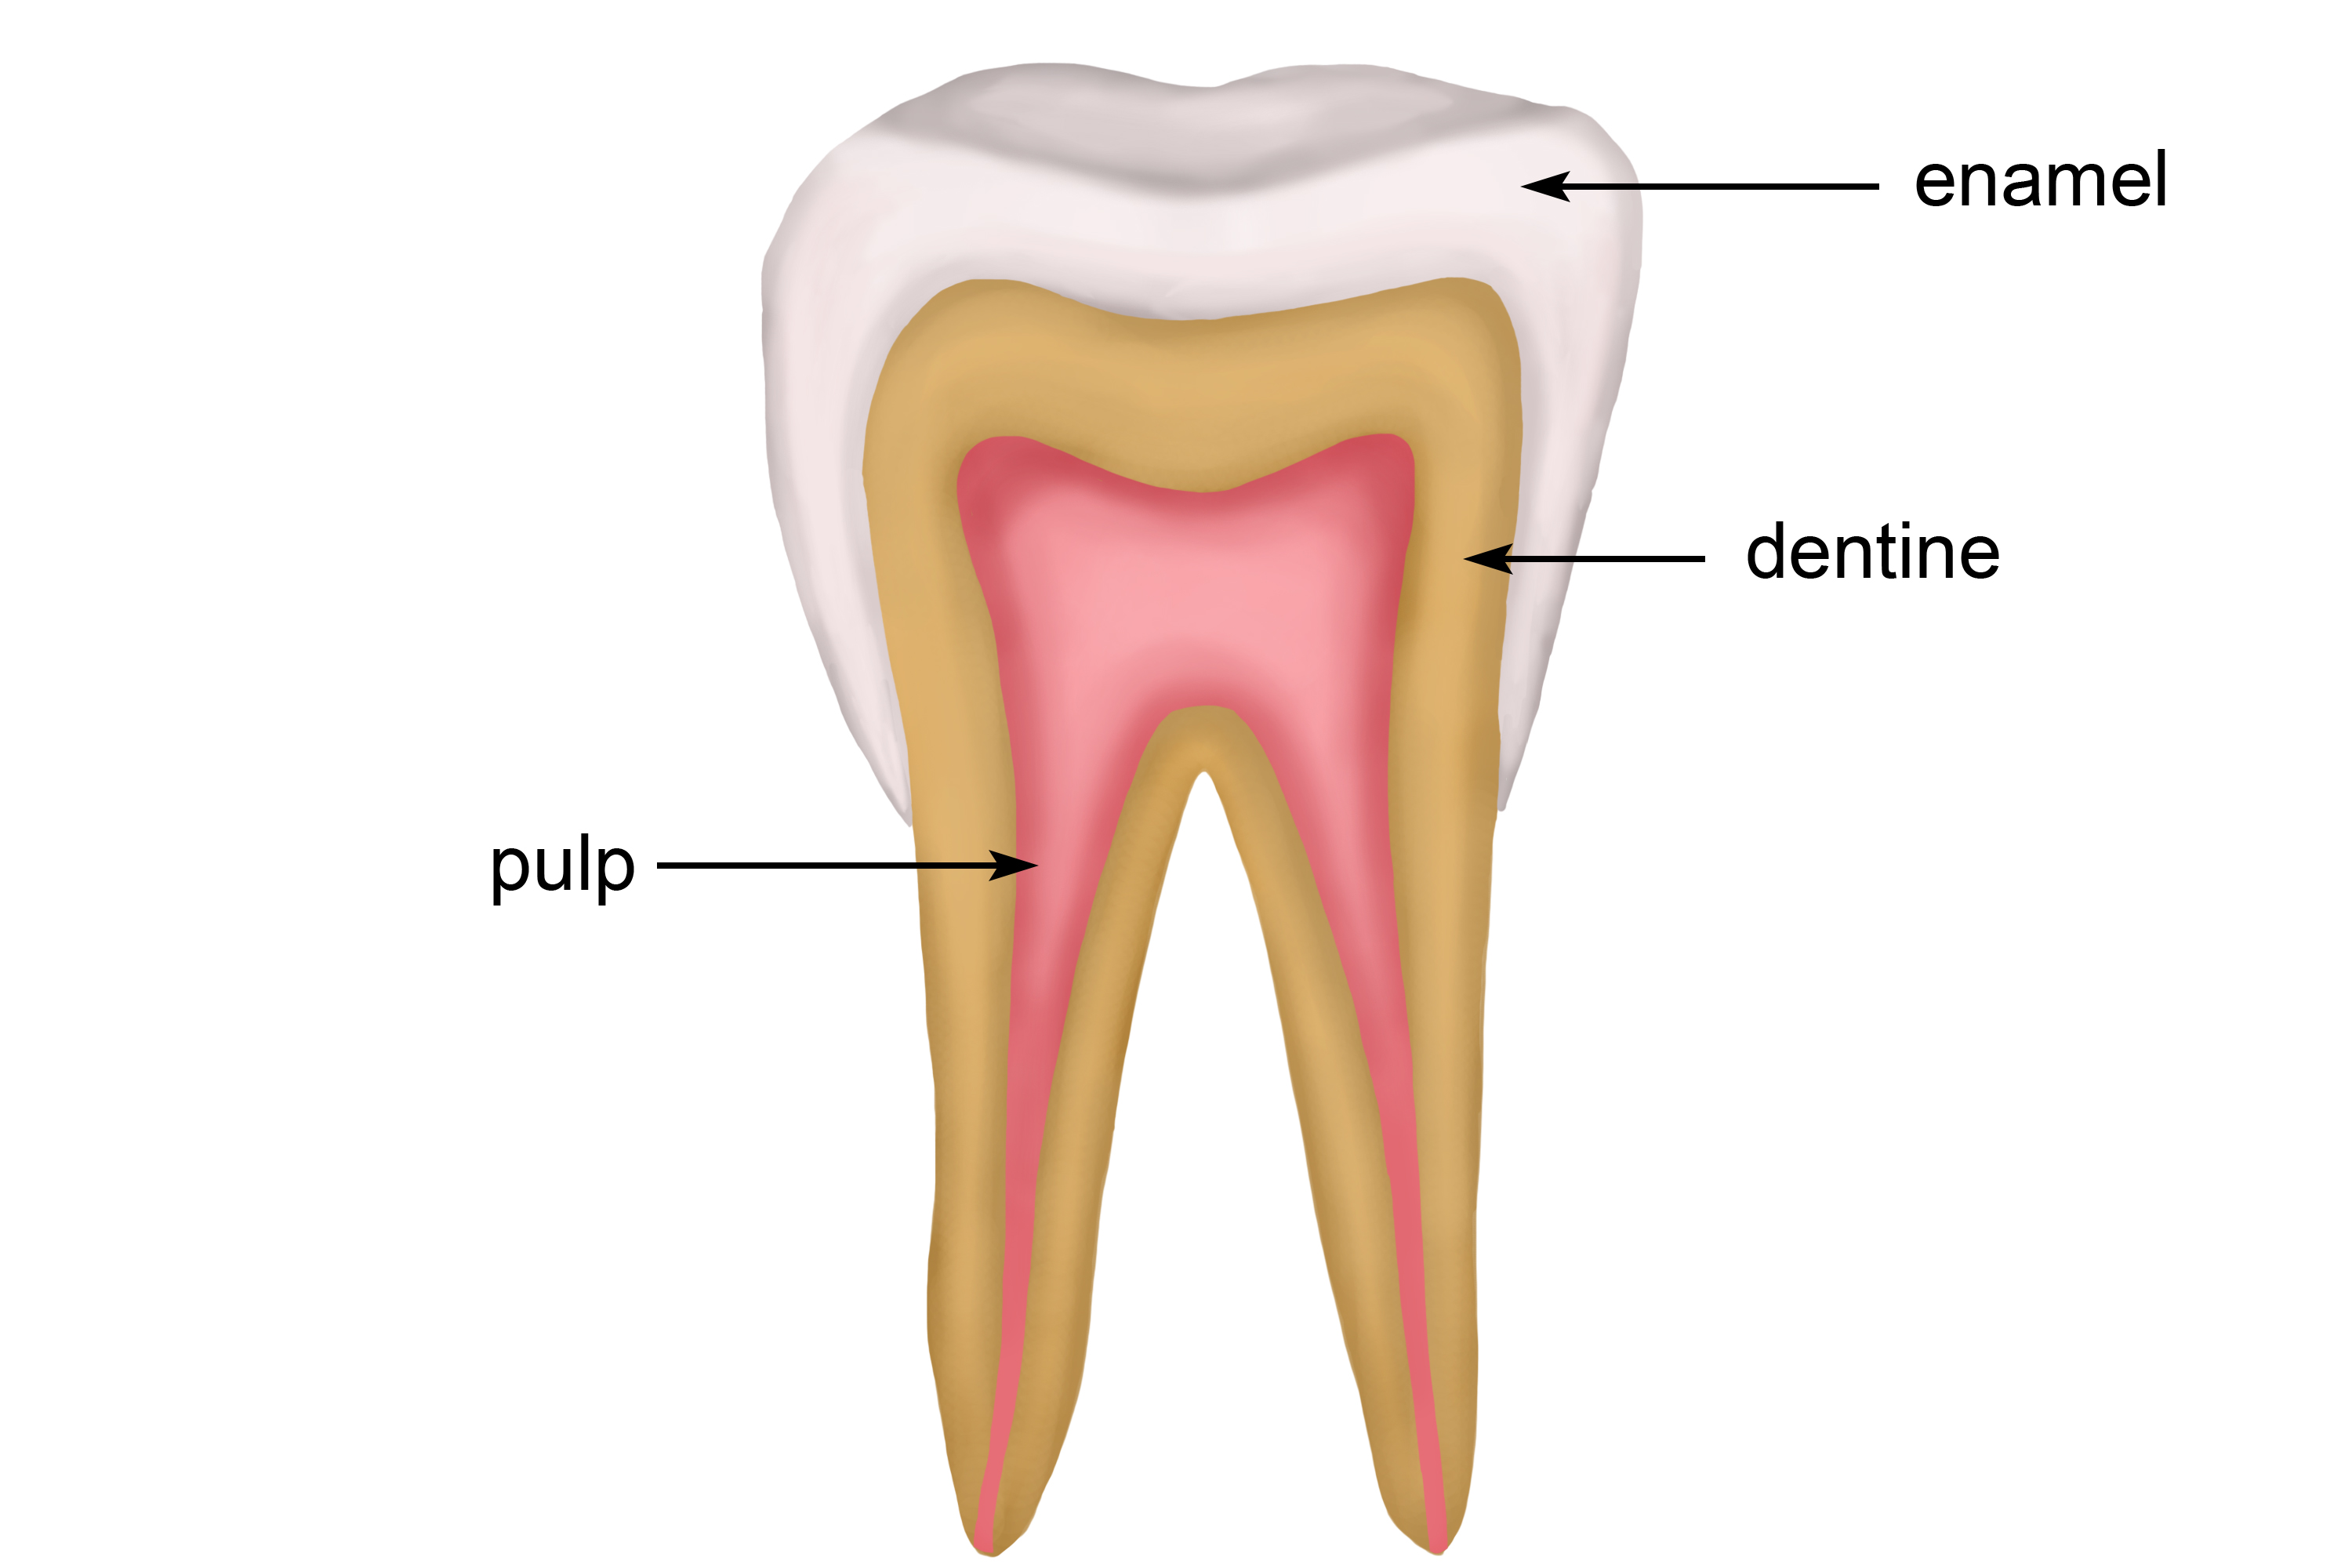 Structure of the tooth including enamel, dentine and pulp